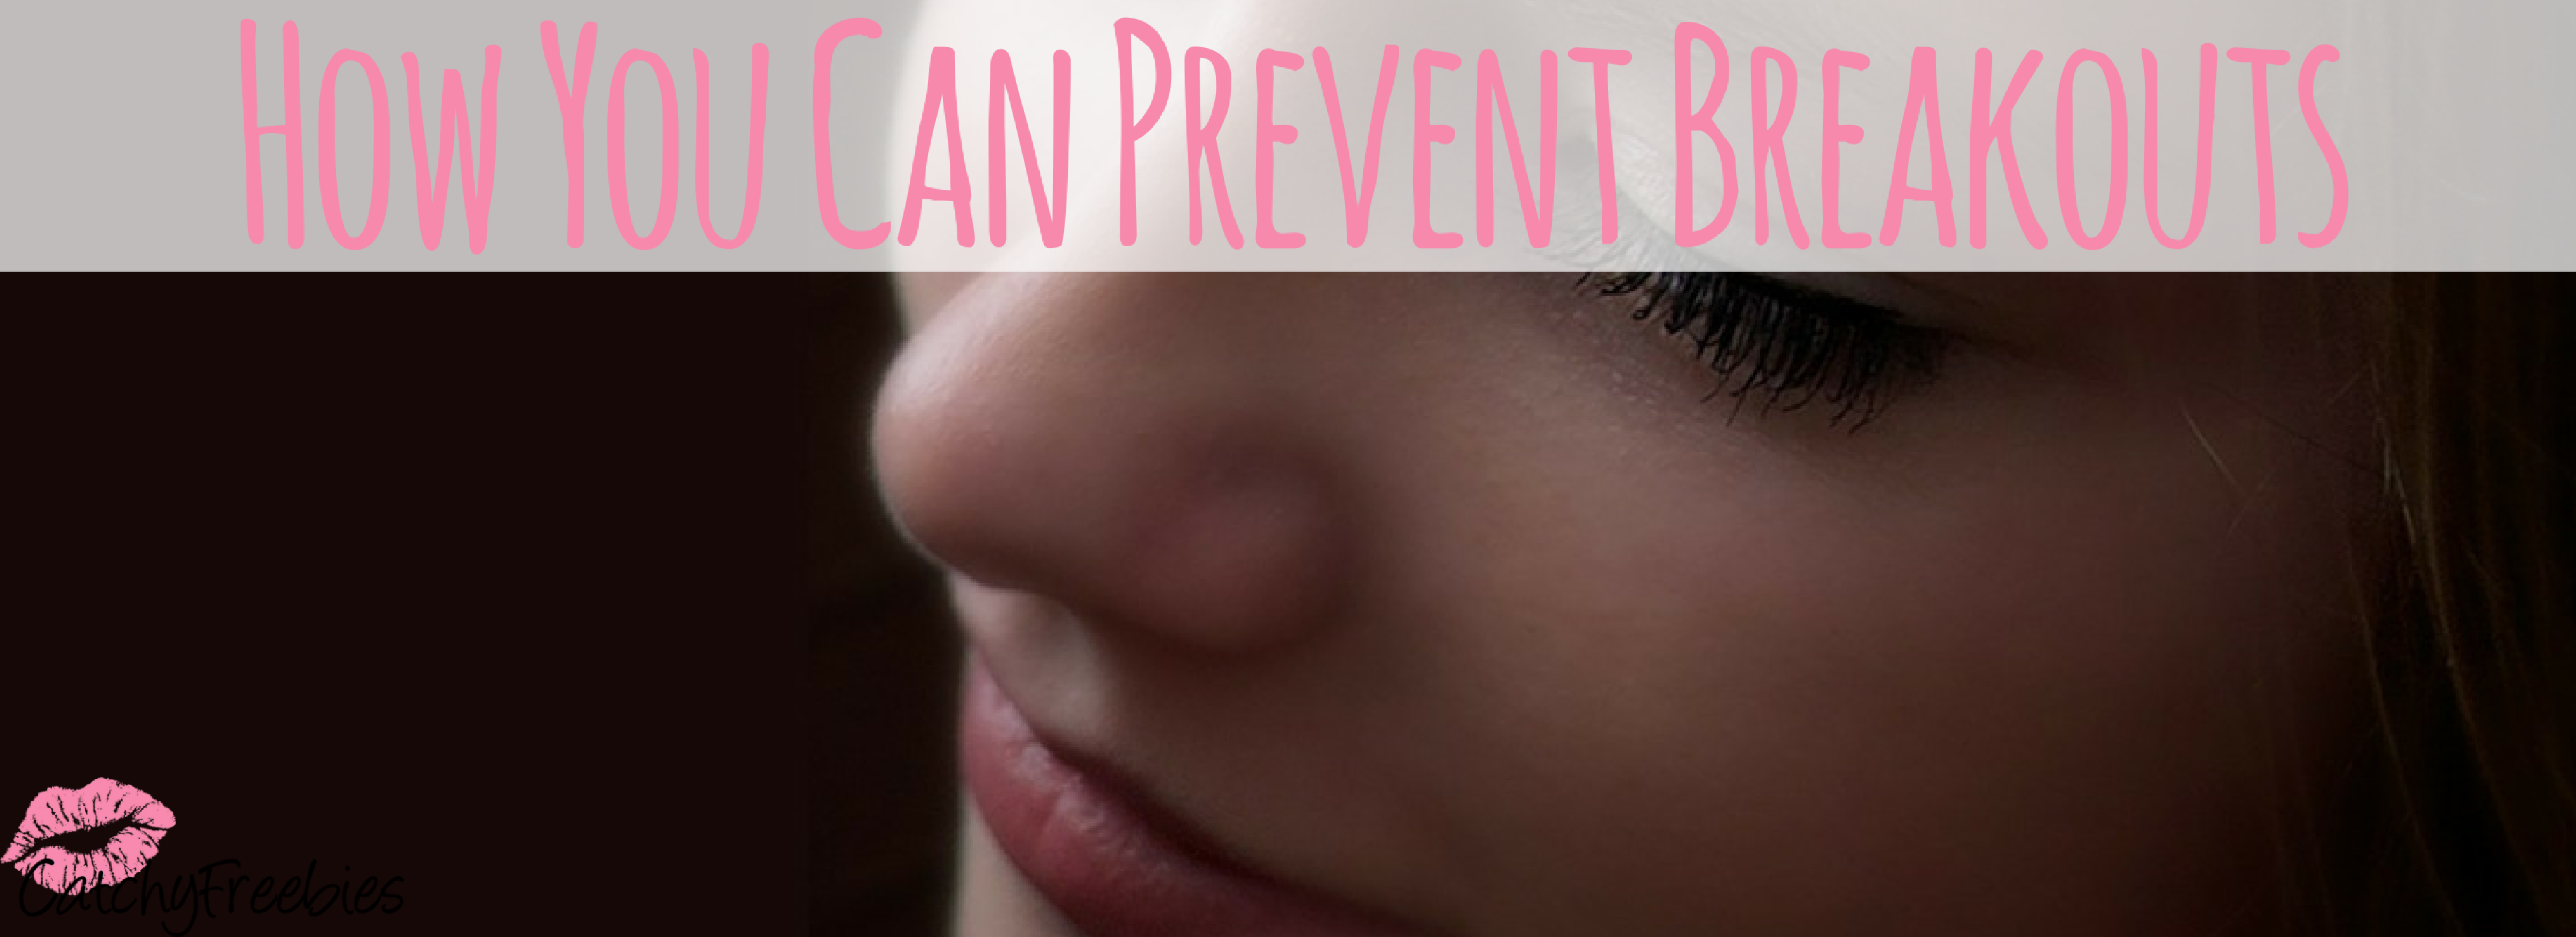 How You Can Prevent Breakouts